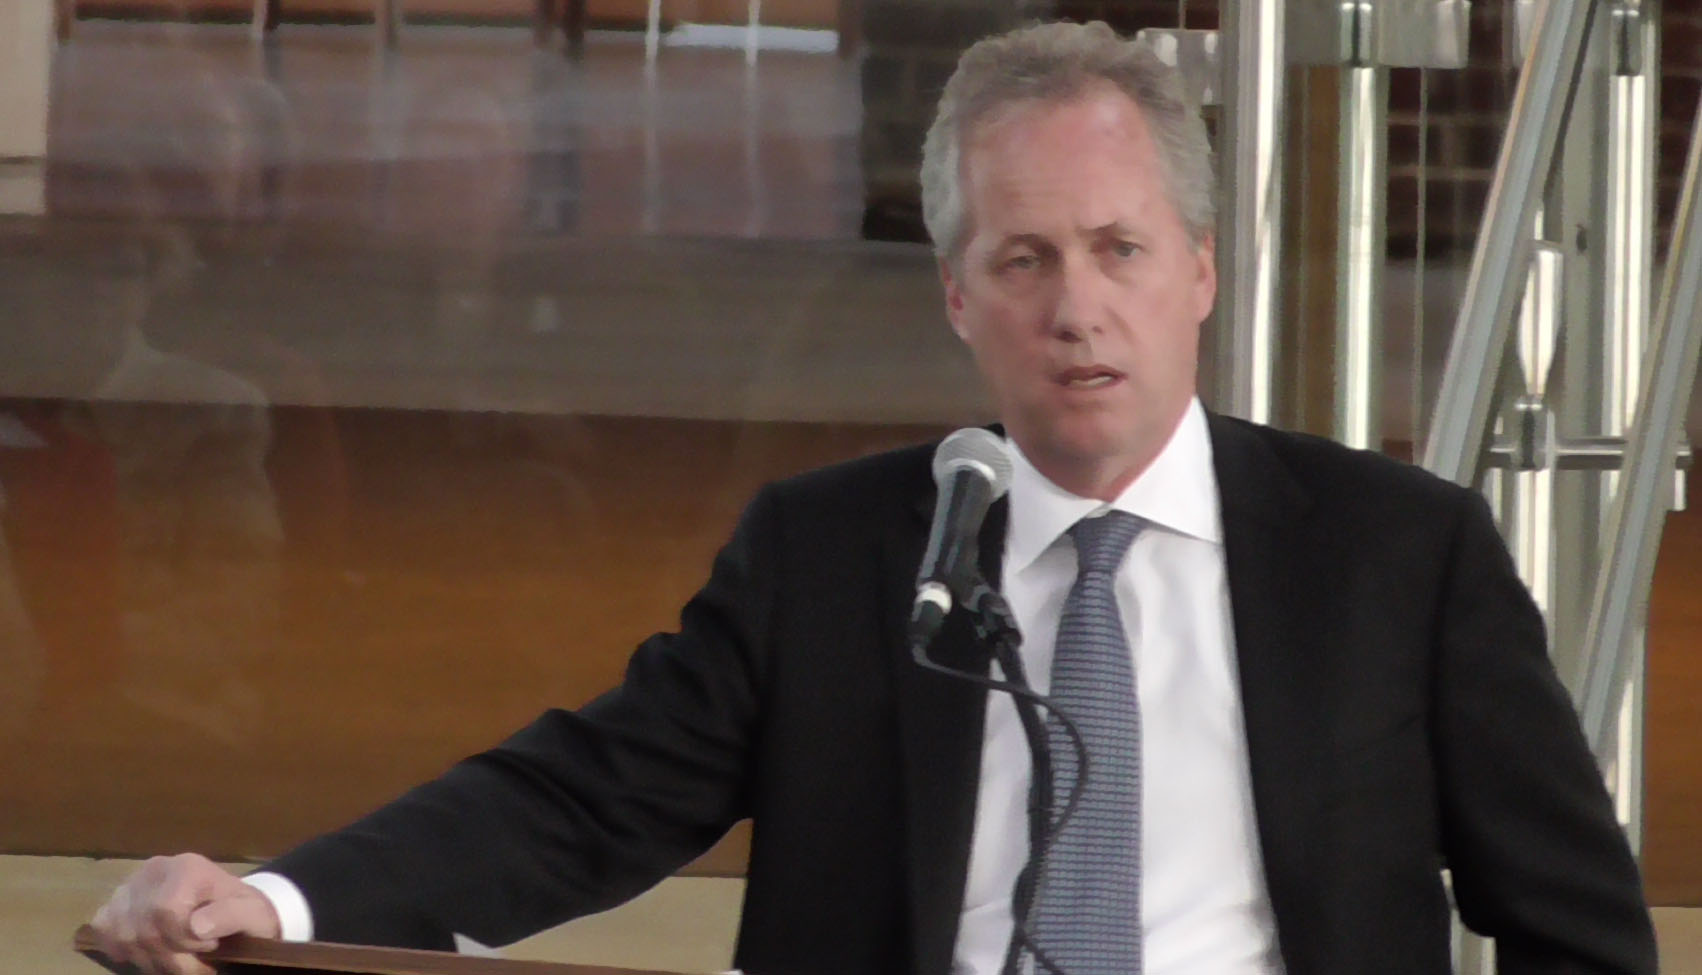 mayor fischer